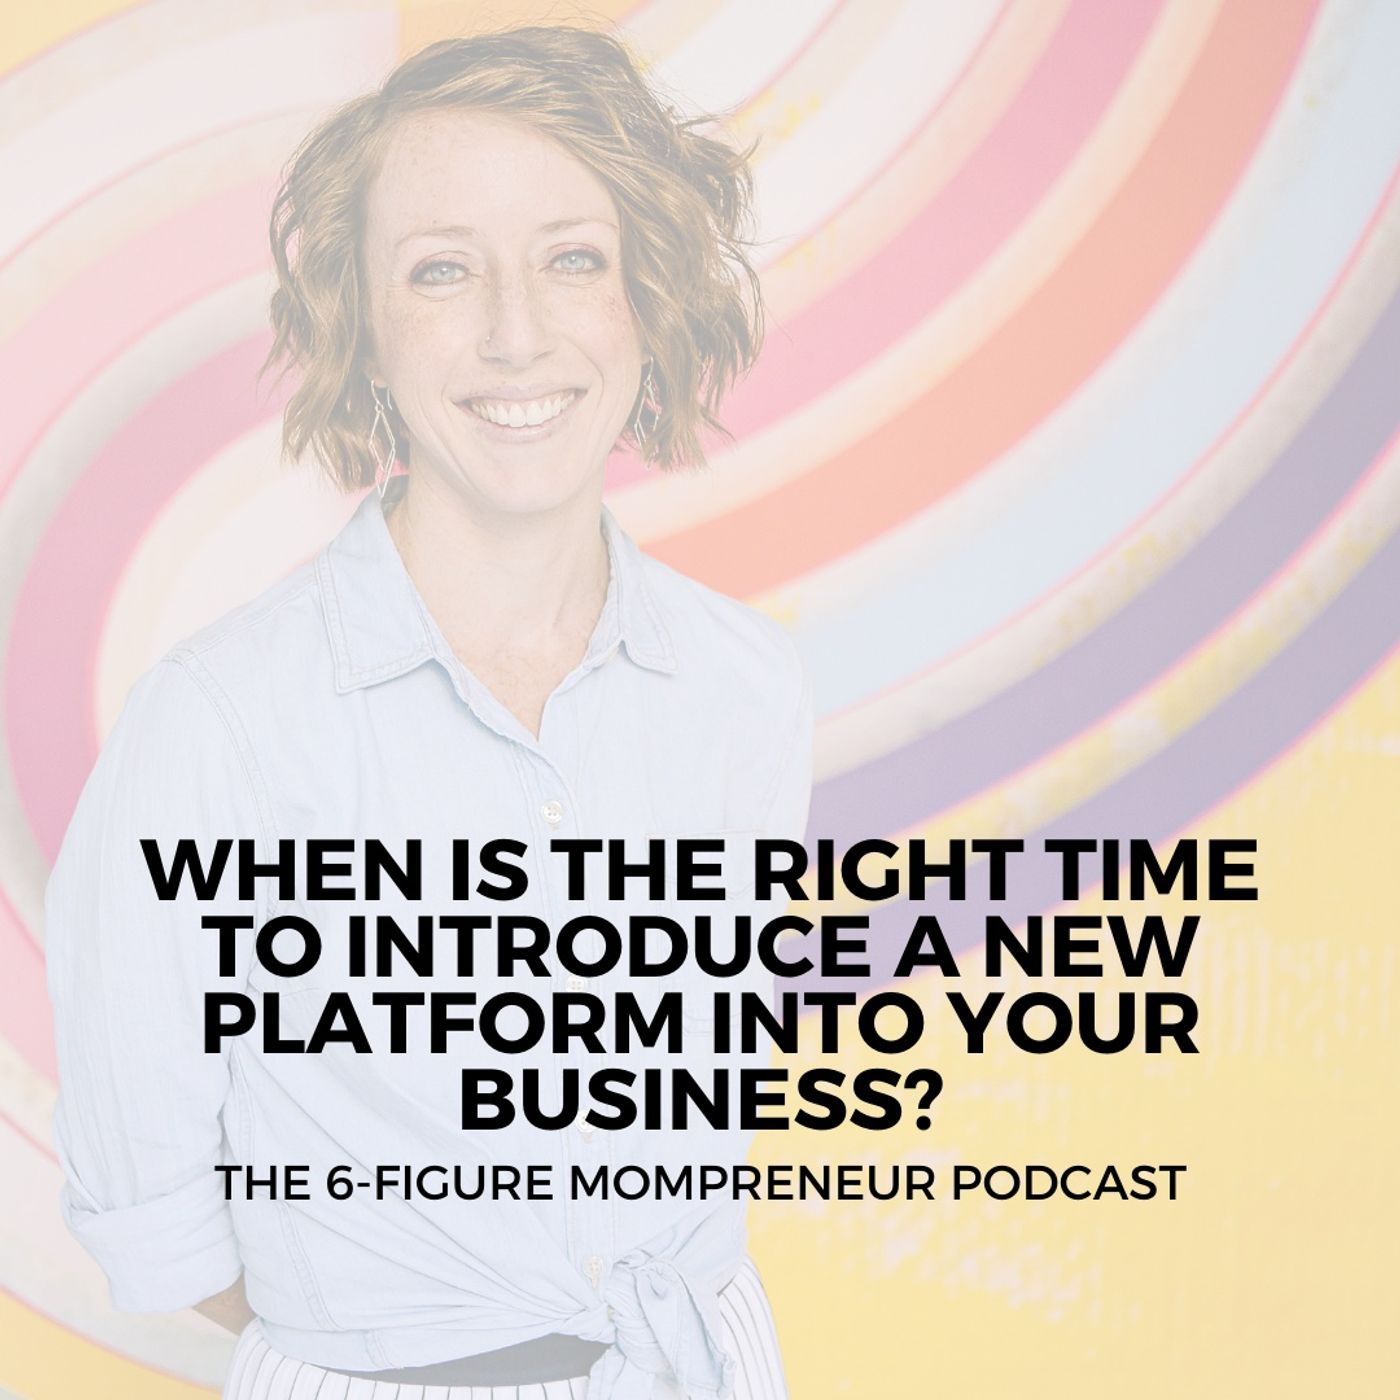 When is the right time to introduce a new platform into your business?